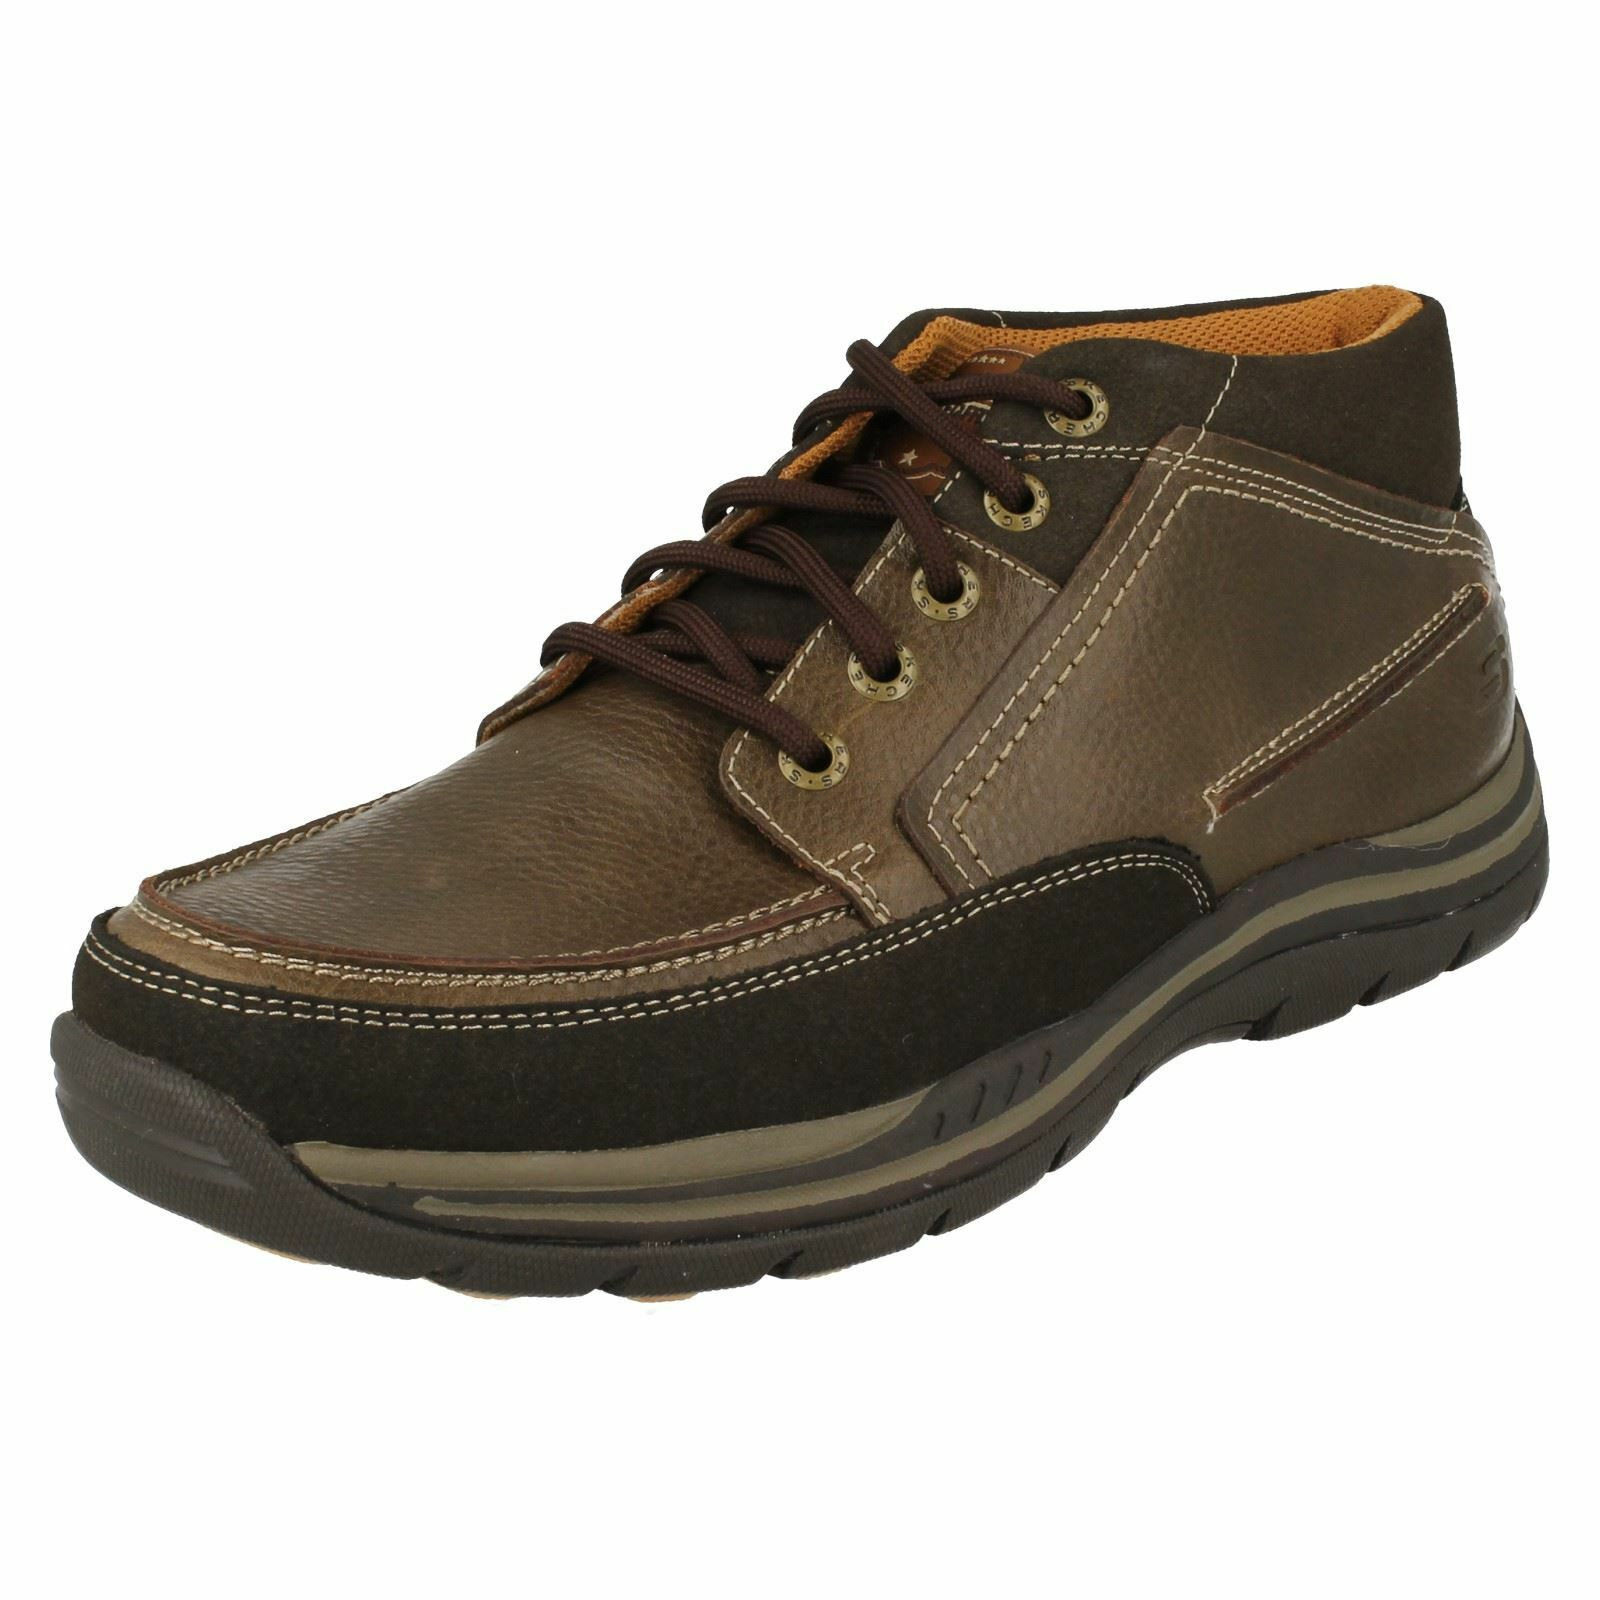 Mens Skechers Relaxed Fit Memory Foam Ankle Boots 'Cason'